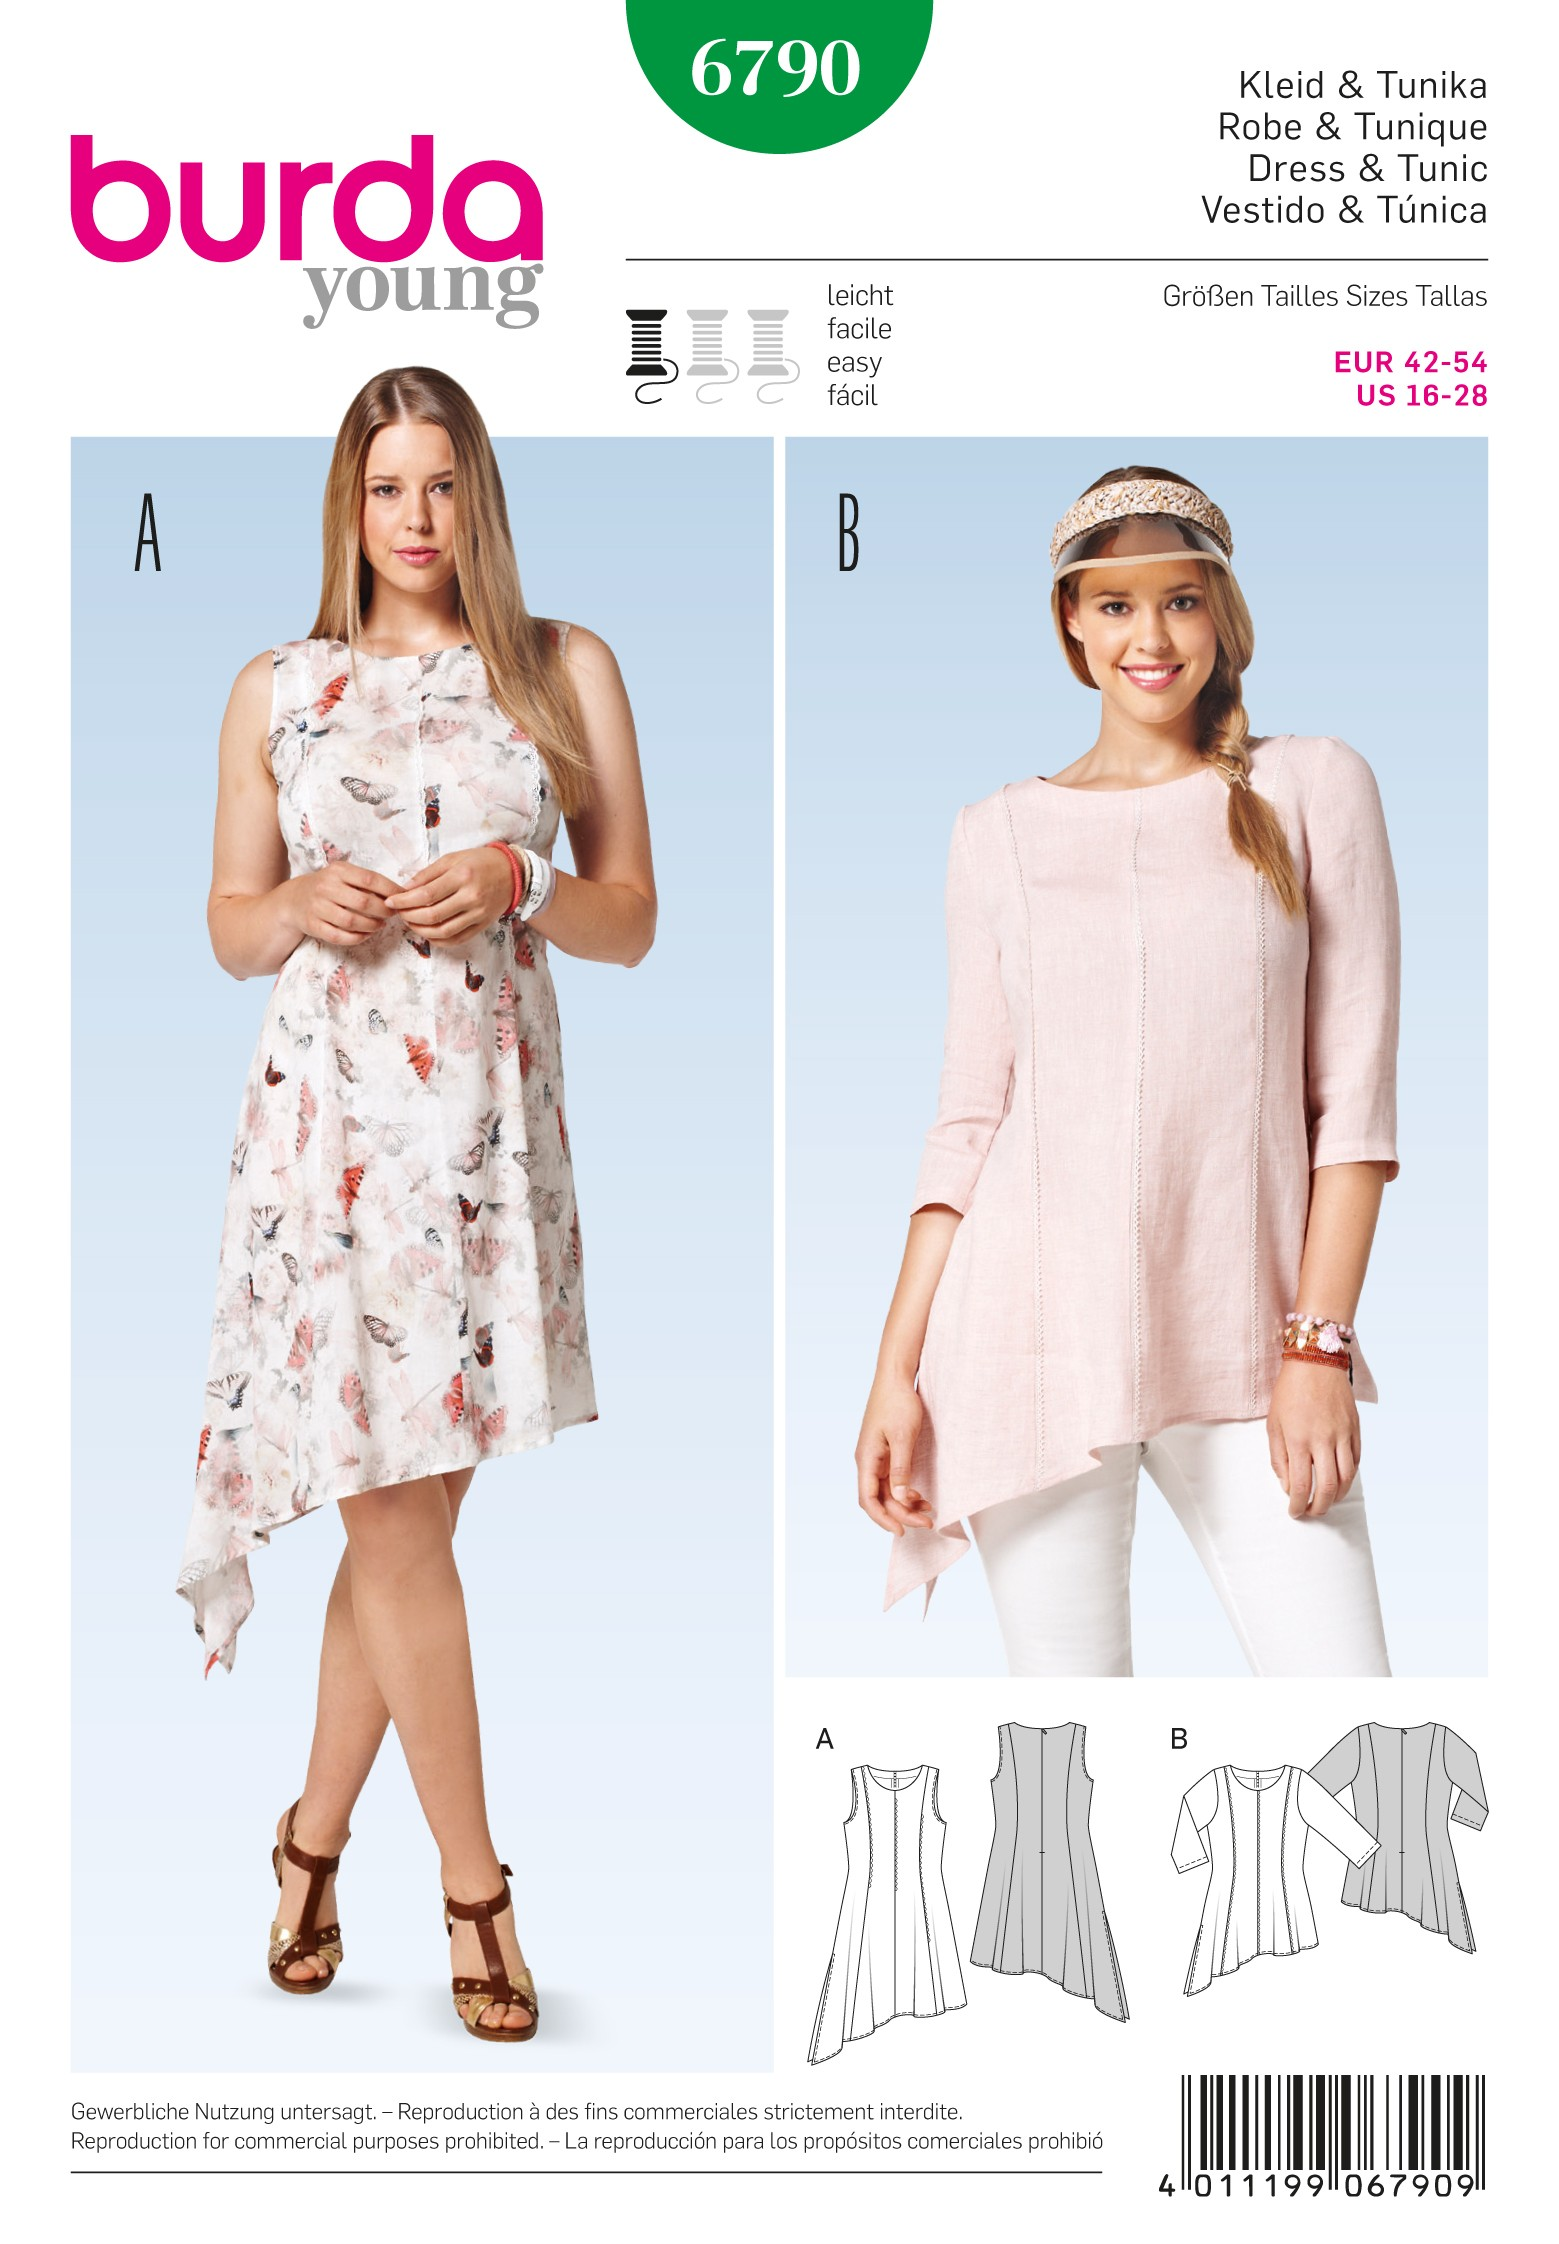 Burda Style Womans' Angled Sumer Dress or Blouse Sewing Pattern 6790